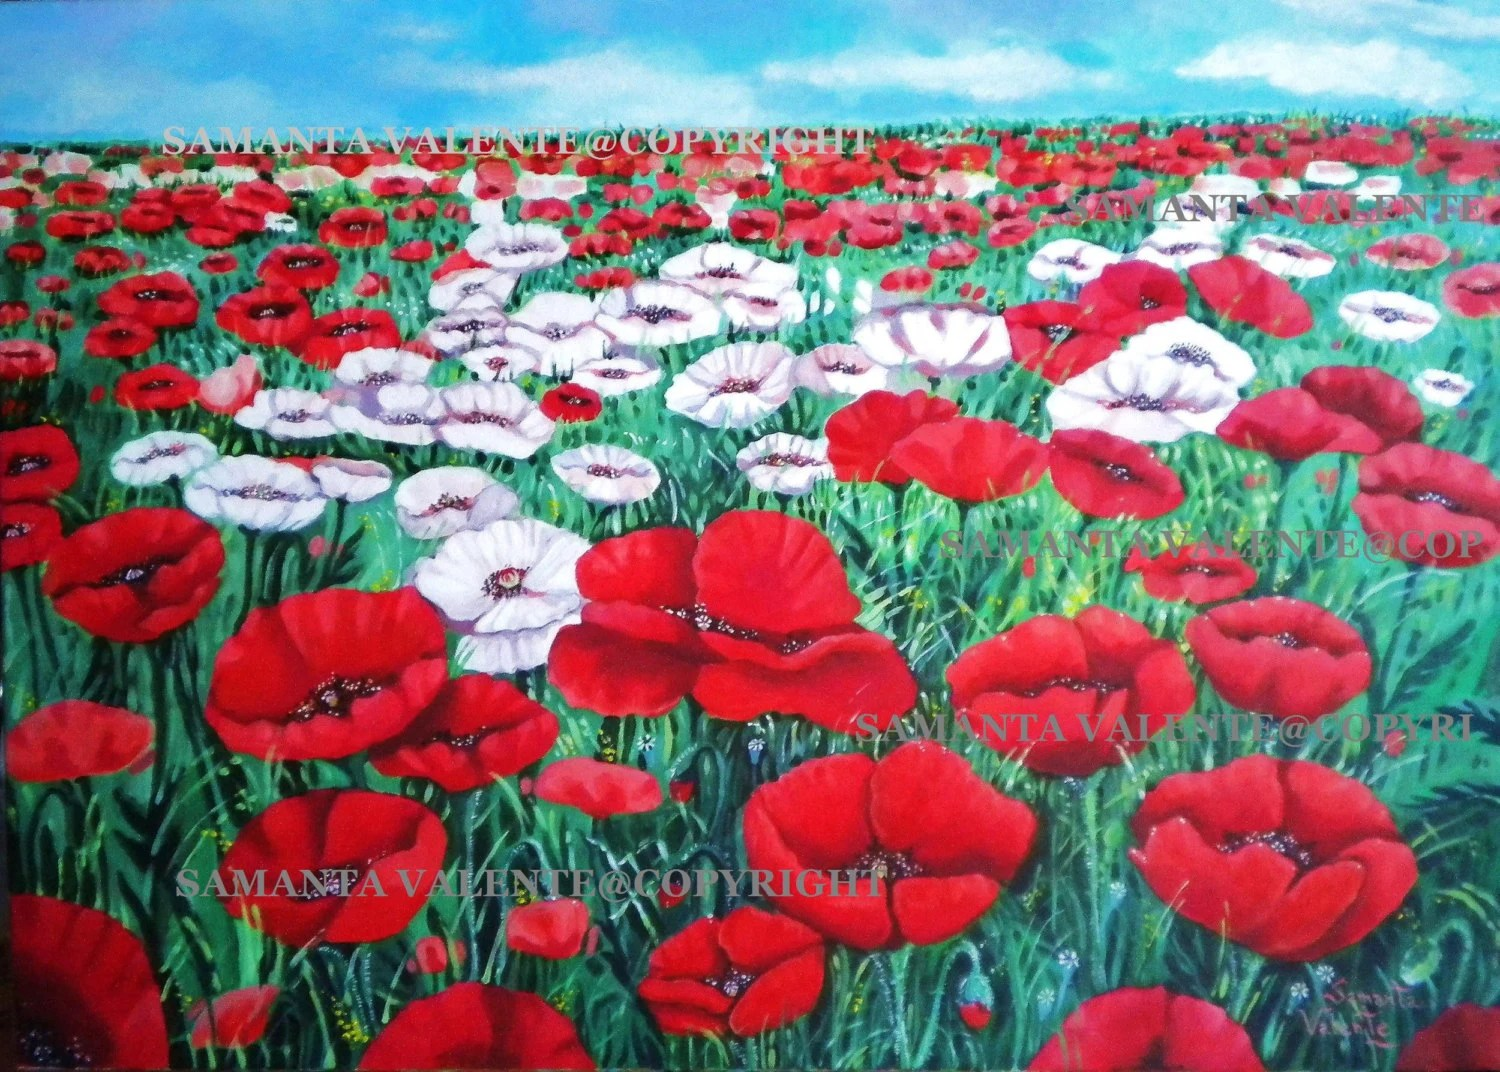 Art print, original art, poster,original painting by Samanta Valente with red poppies and white 8x11inch. - samantart